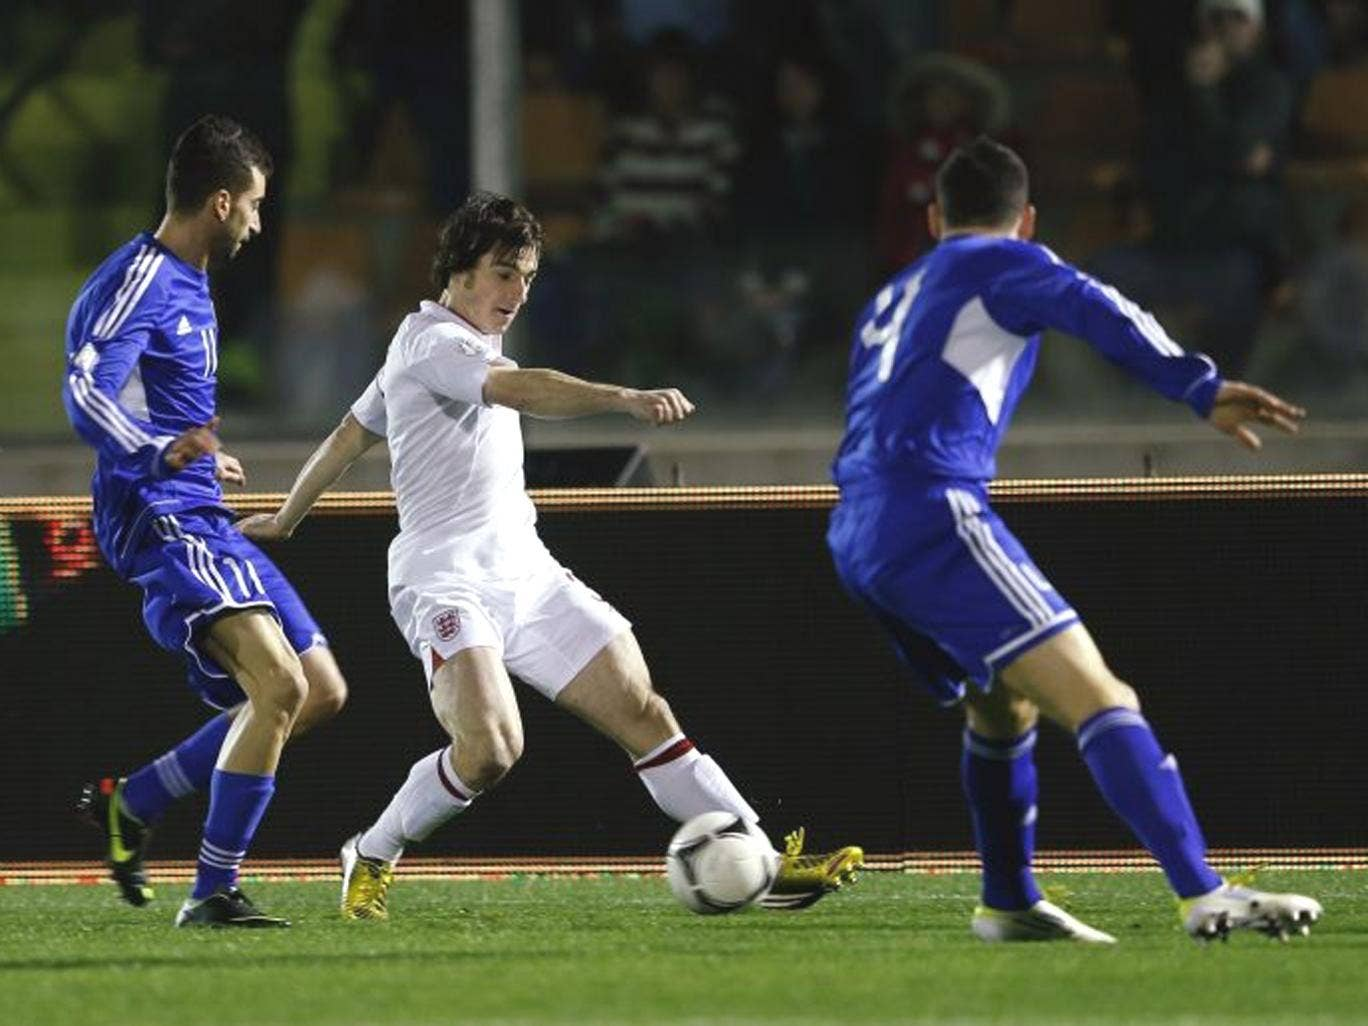 Leighton Baines set up three of the goals in last night's canter